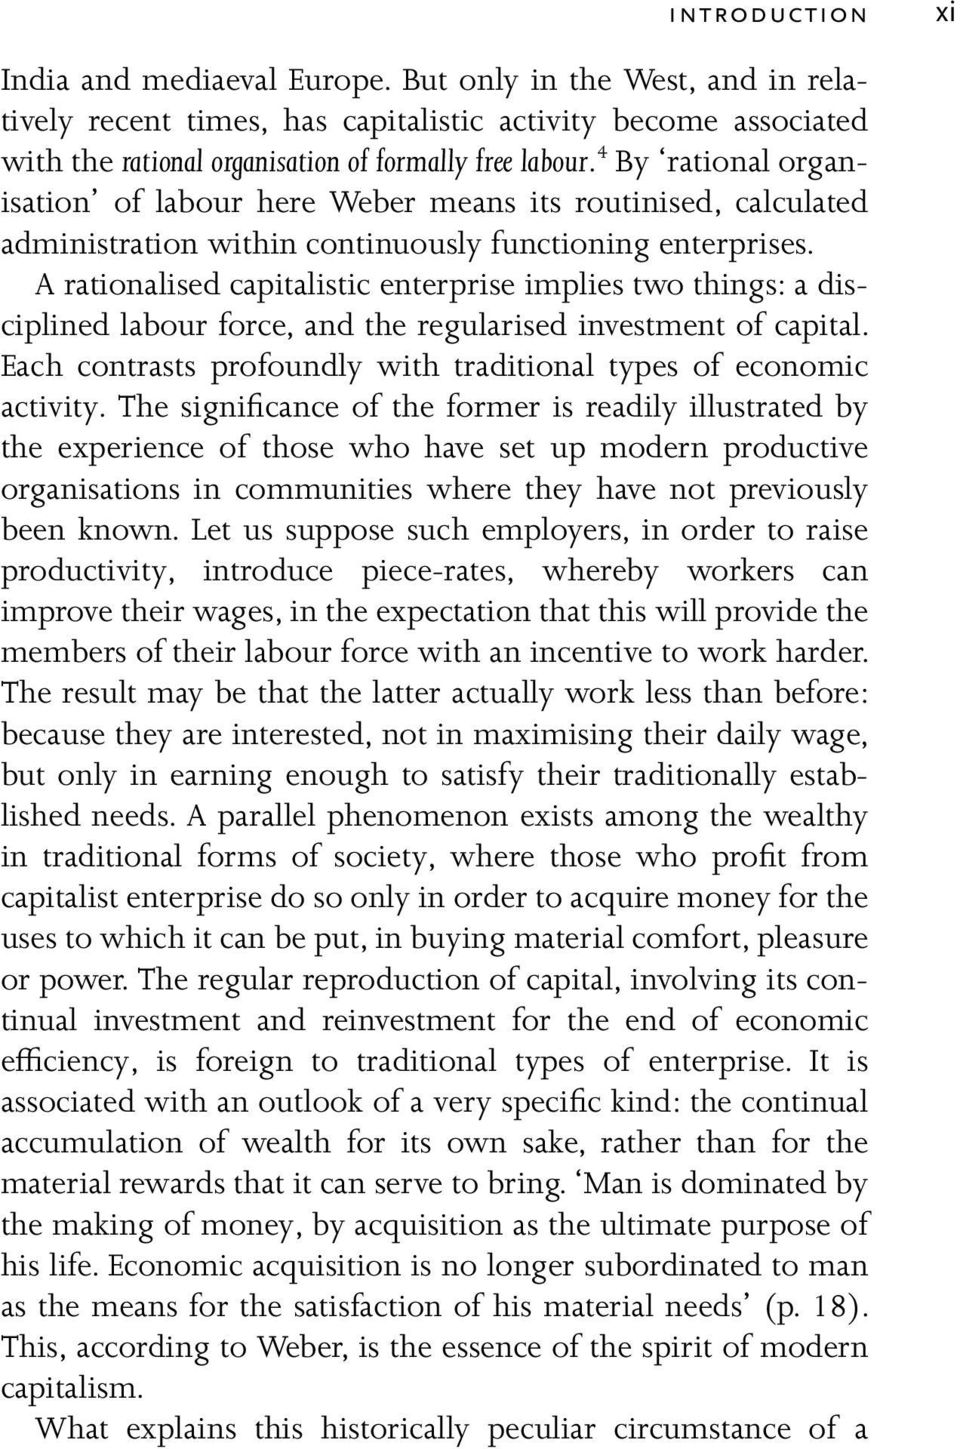 A rationalised capitalistic enterprise implies two things: a disciplined labour force, and the regularised investment of capital. Each contrasts profoundly with traditional types of economic activity.